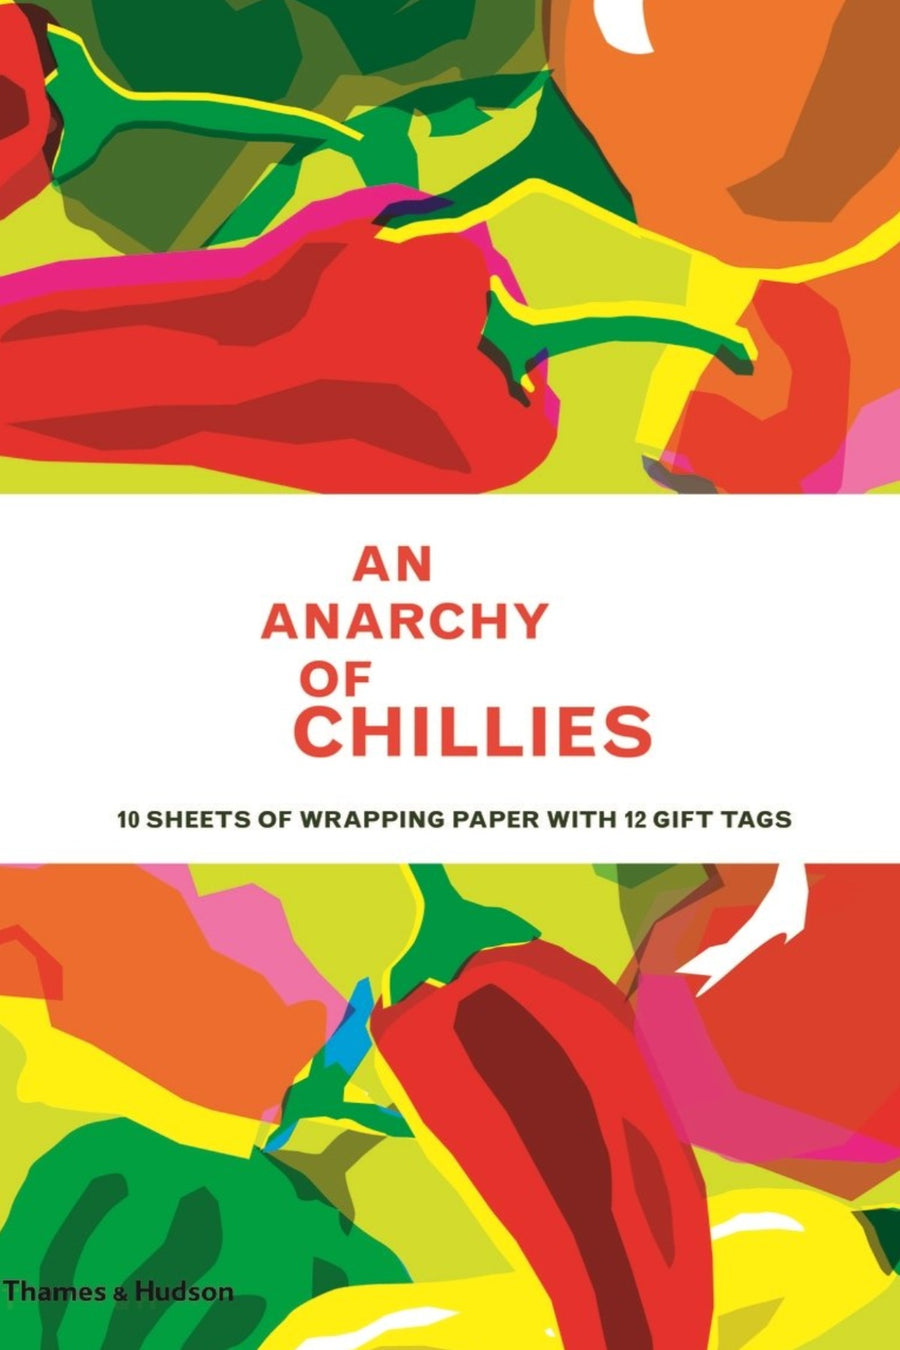 An Anarchy of Chillies - Gift Wrapping - Shop Online At Mookah - mookah.com.au